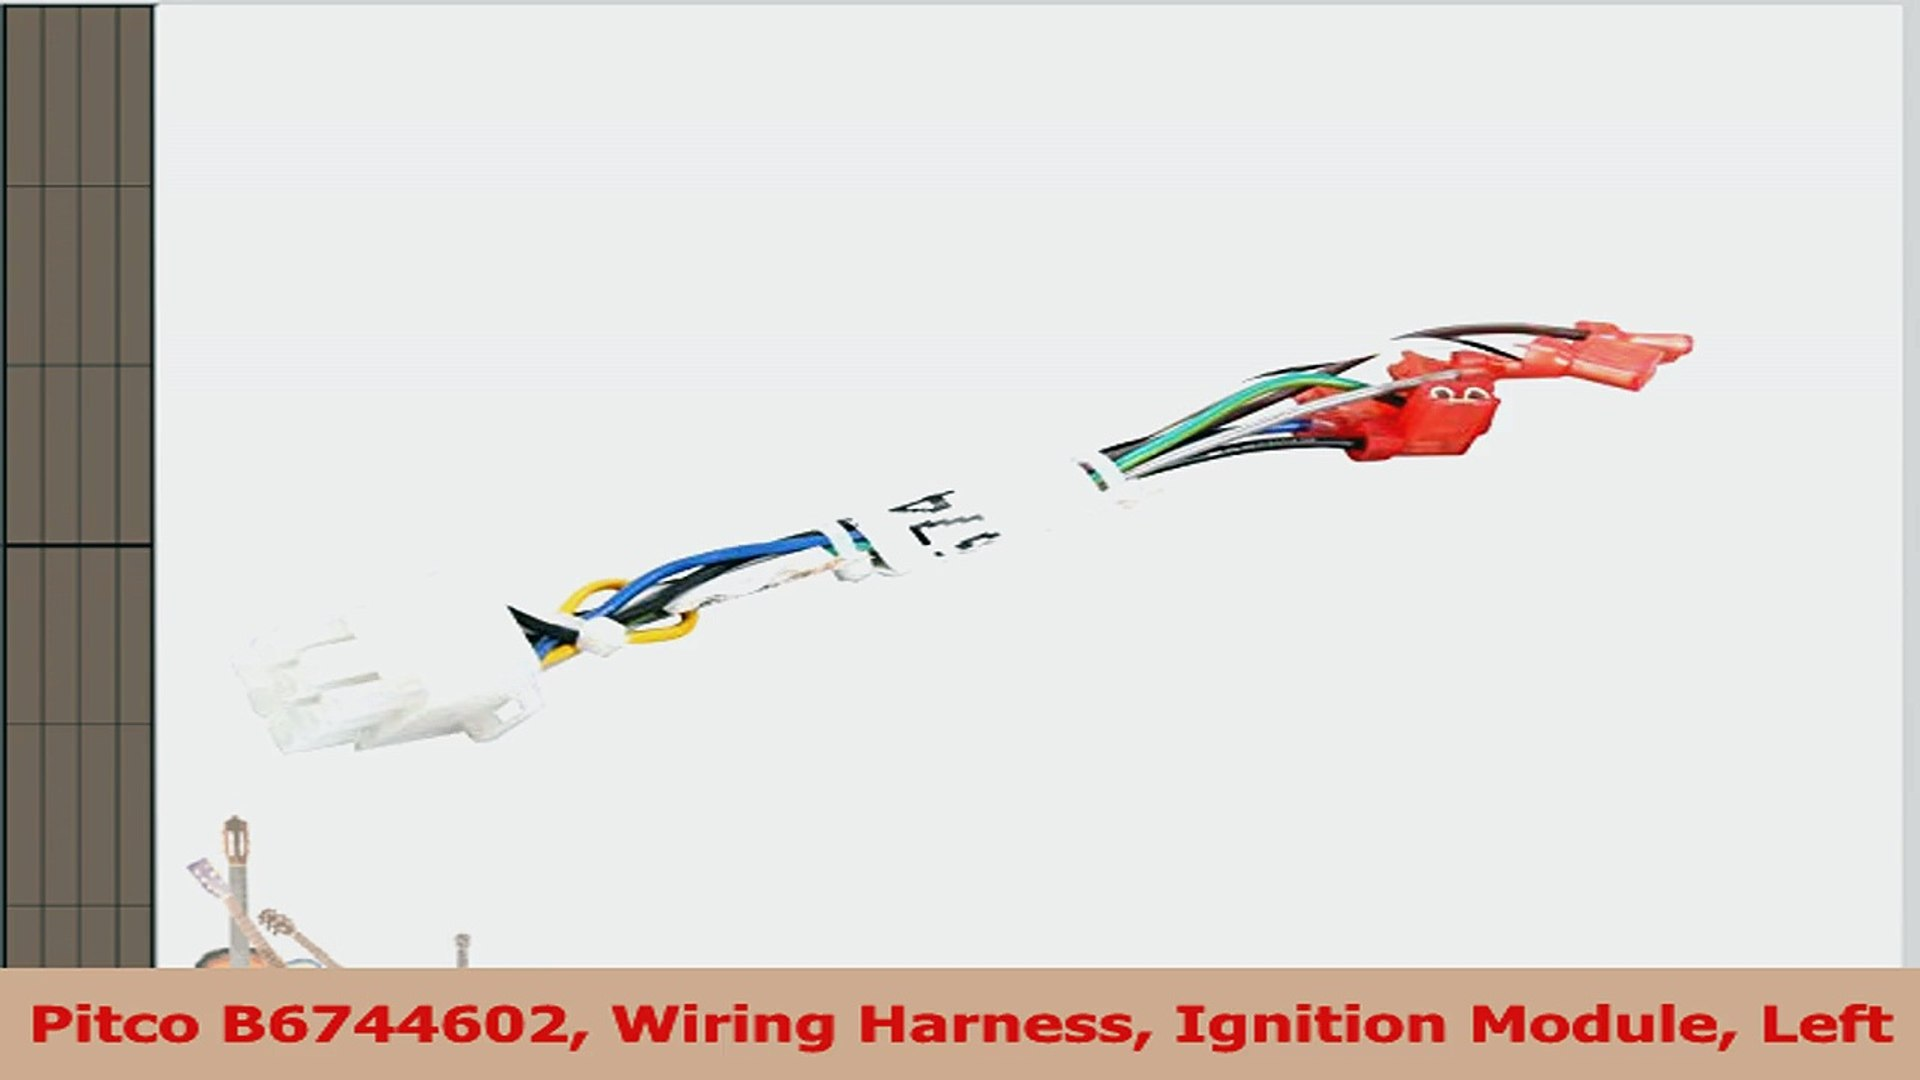 Pitco B6744602 Wiring Harness Ignition Module Left 3a69e02d on wiring harness, harley ignition module harness, ignition switch harness, ignition module coil, ignition control module harness 4.1l, rx-8 ignition coil wire harness, ignition system diagram, q45 ignition coil wire harness,